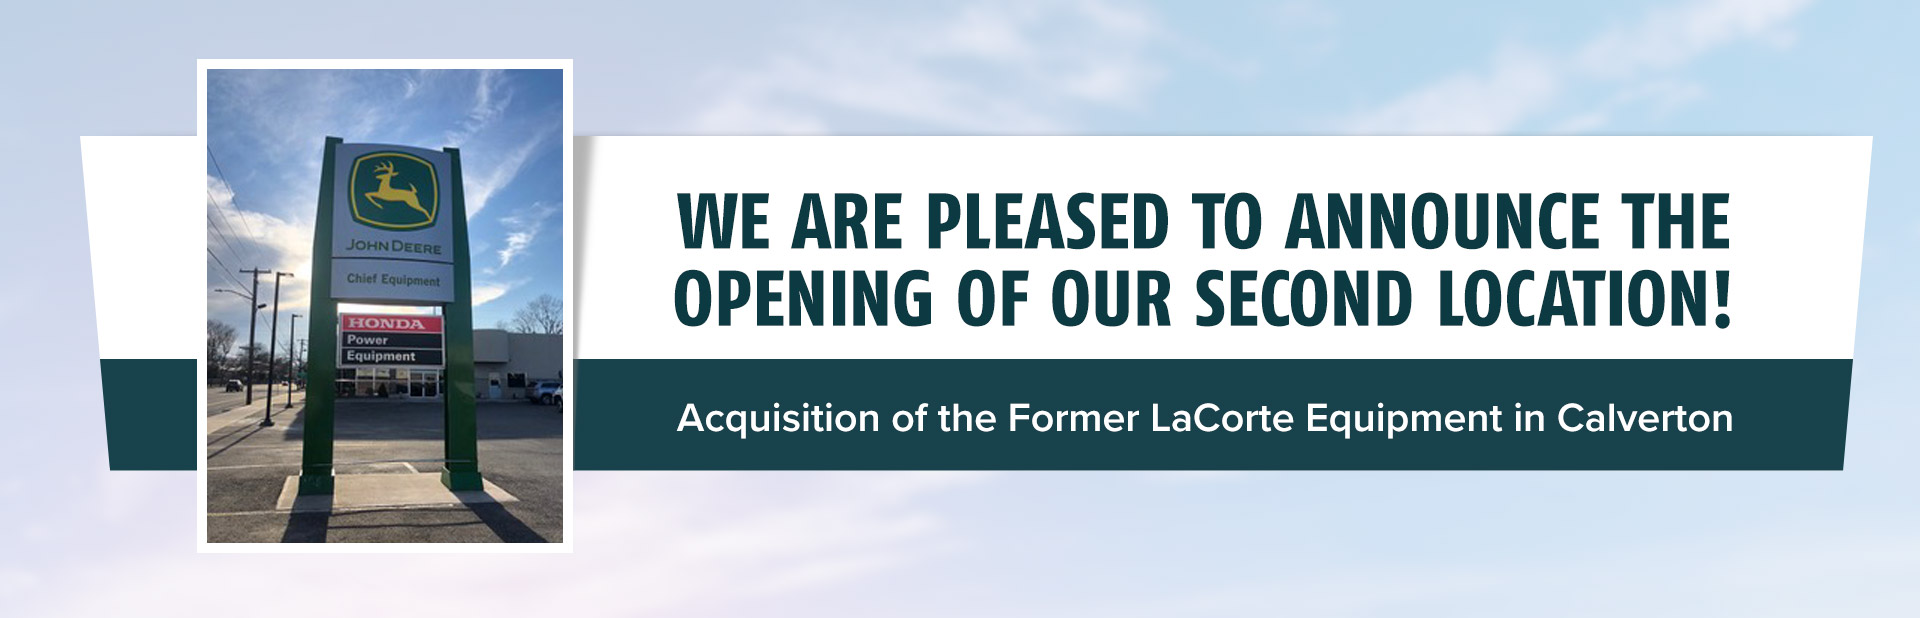 We are pleased to announce the opening of our second location, the former LaCorte Equipment in Calverton!